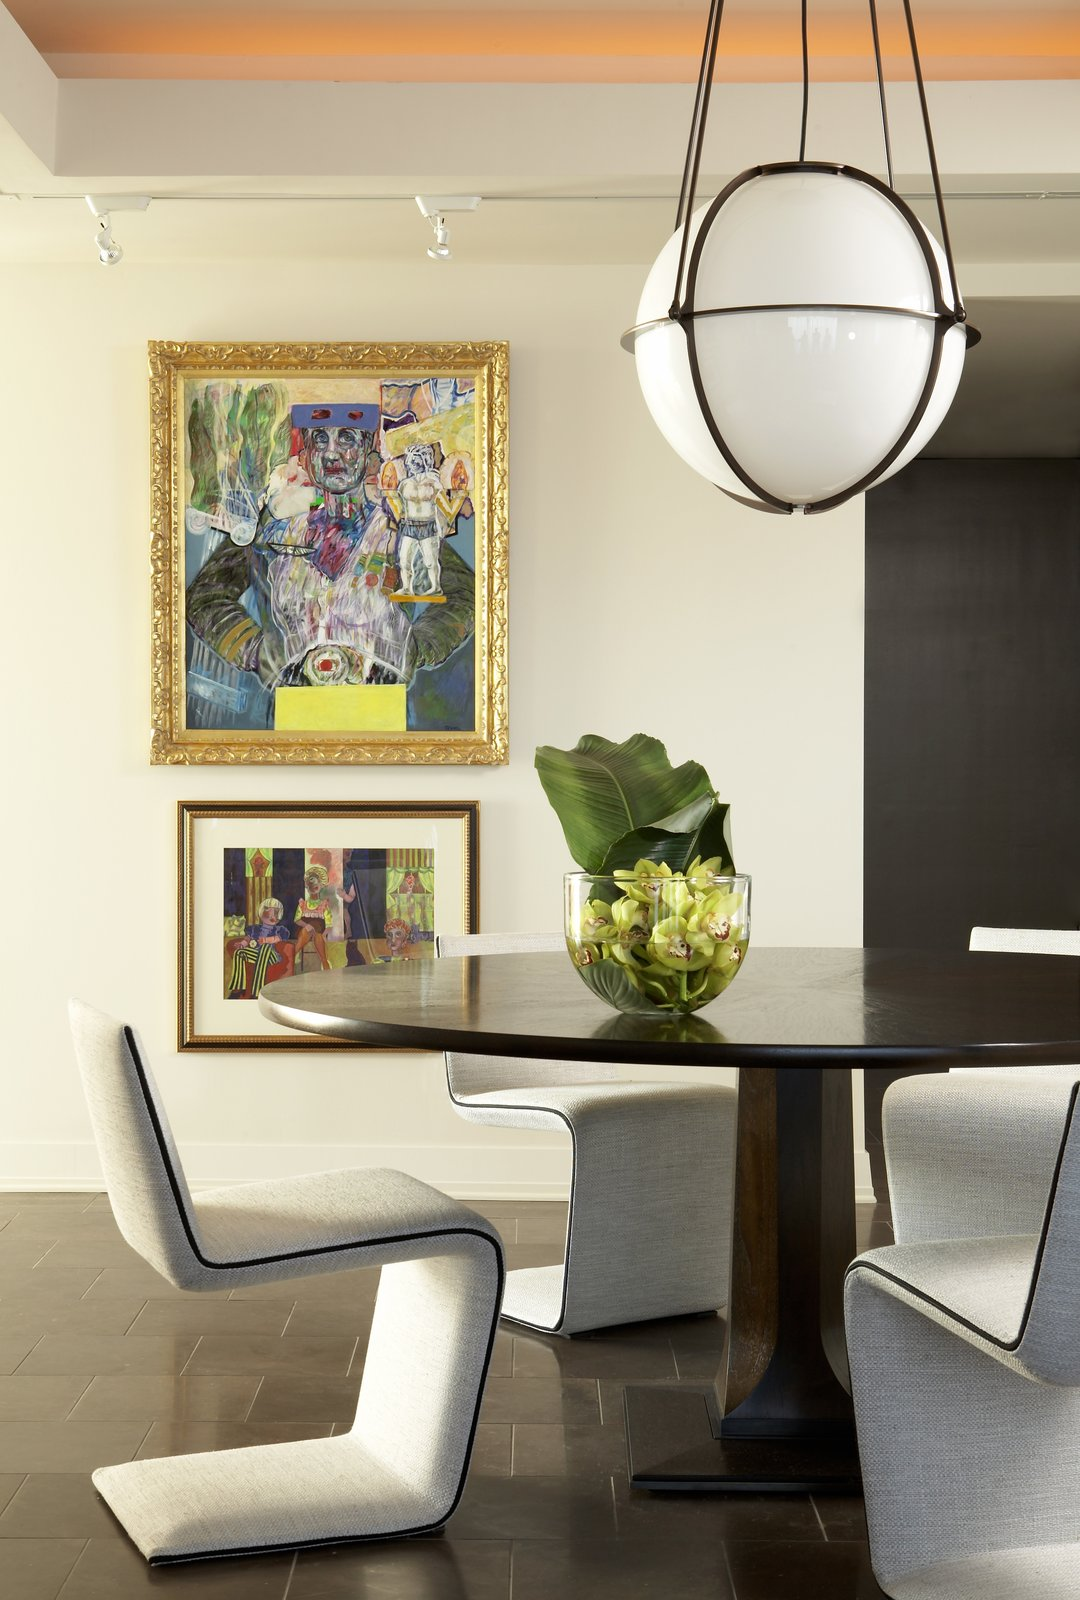 Mark Williams designed this Plaza Towers dining space with lots of light and art. The Globe Pendant is by Boyd Lighting.  60+ Modern Lighting Solutions by Dwell from Delicious Dining Room Lighting